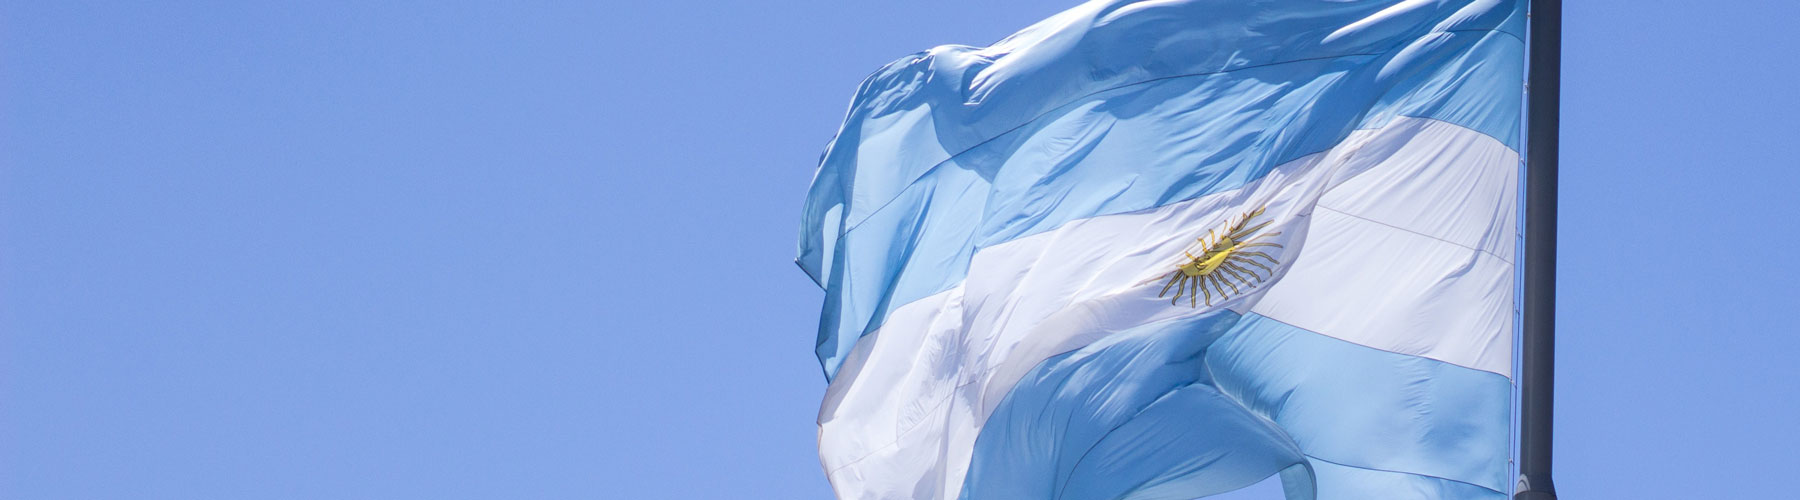 The Argentinian flag flaps in the wind